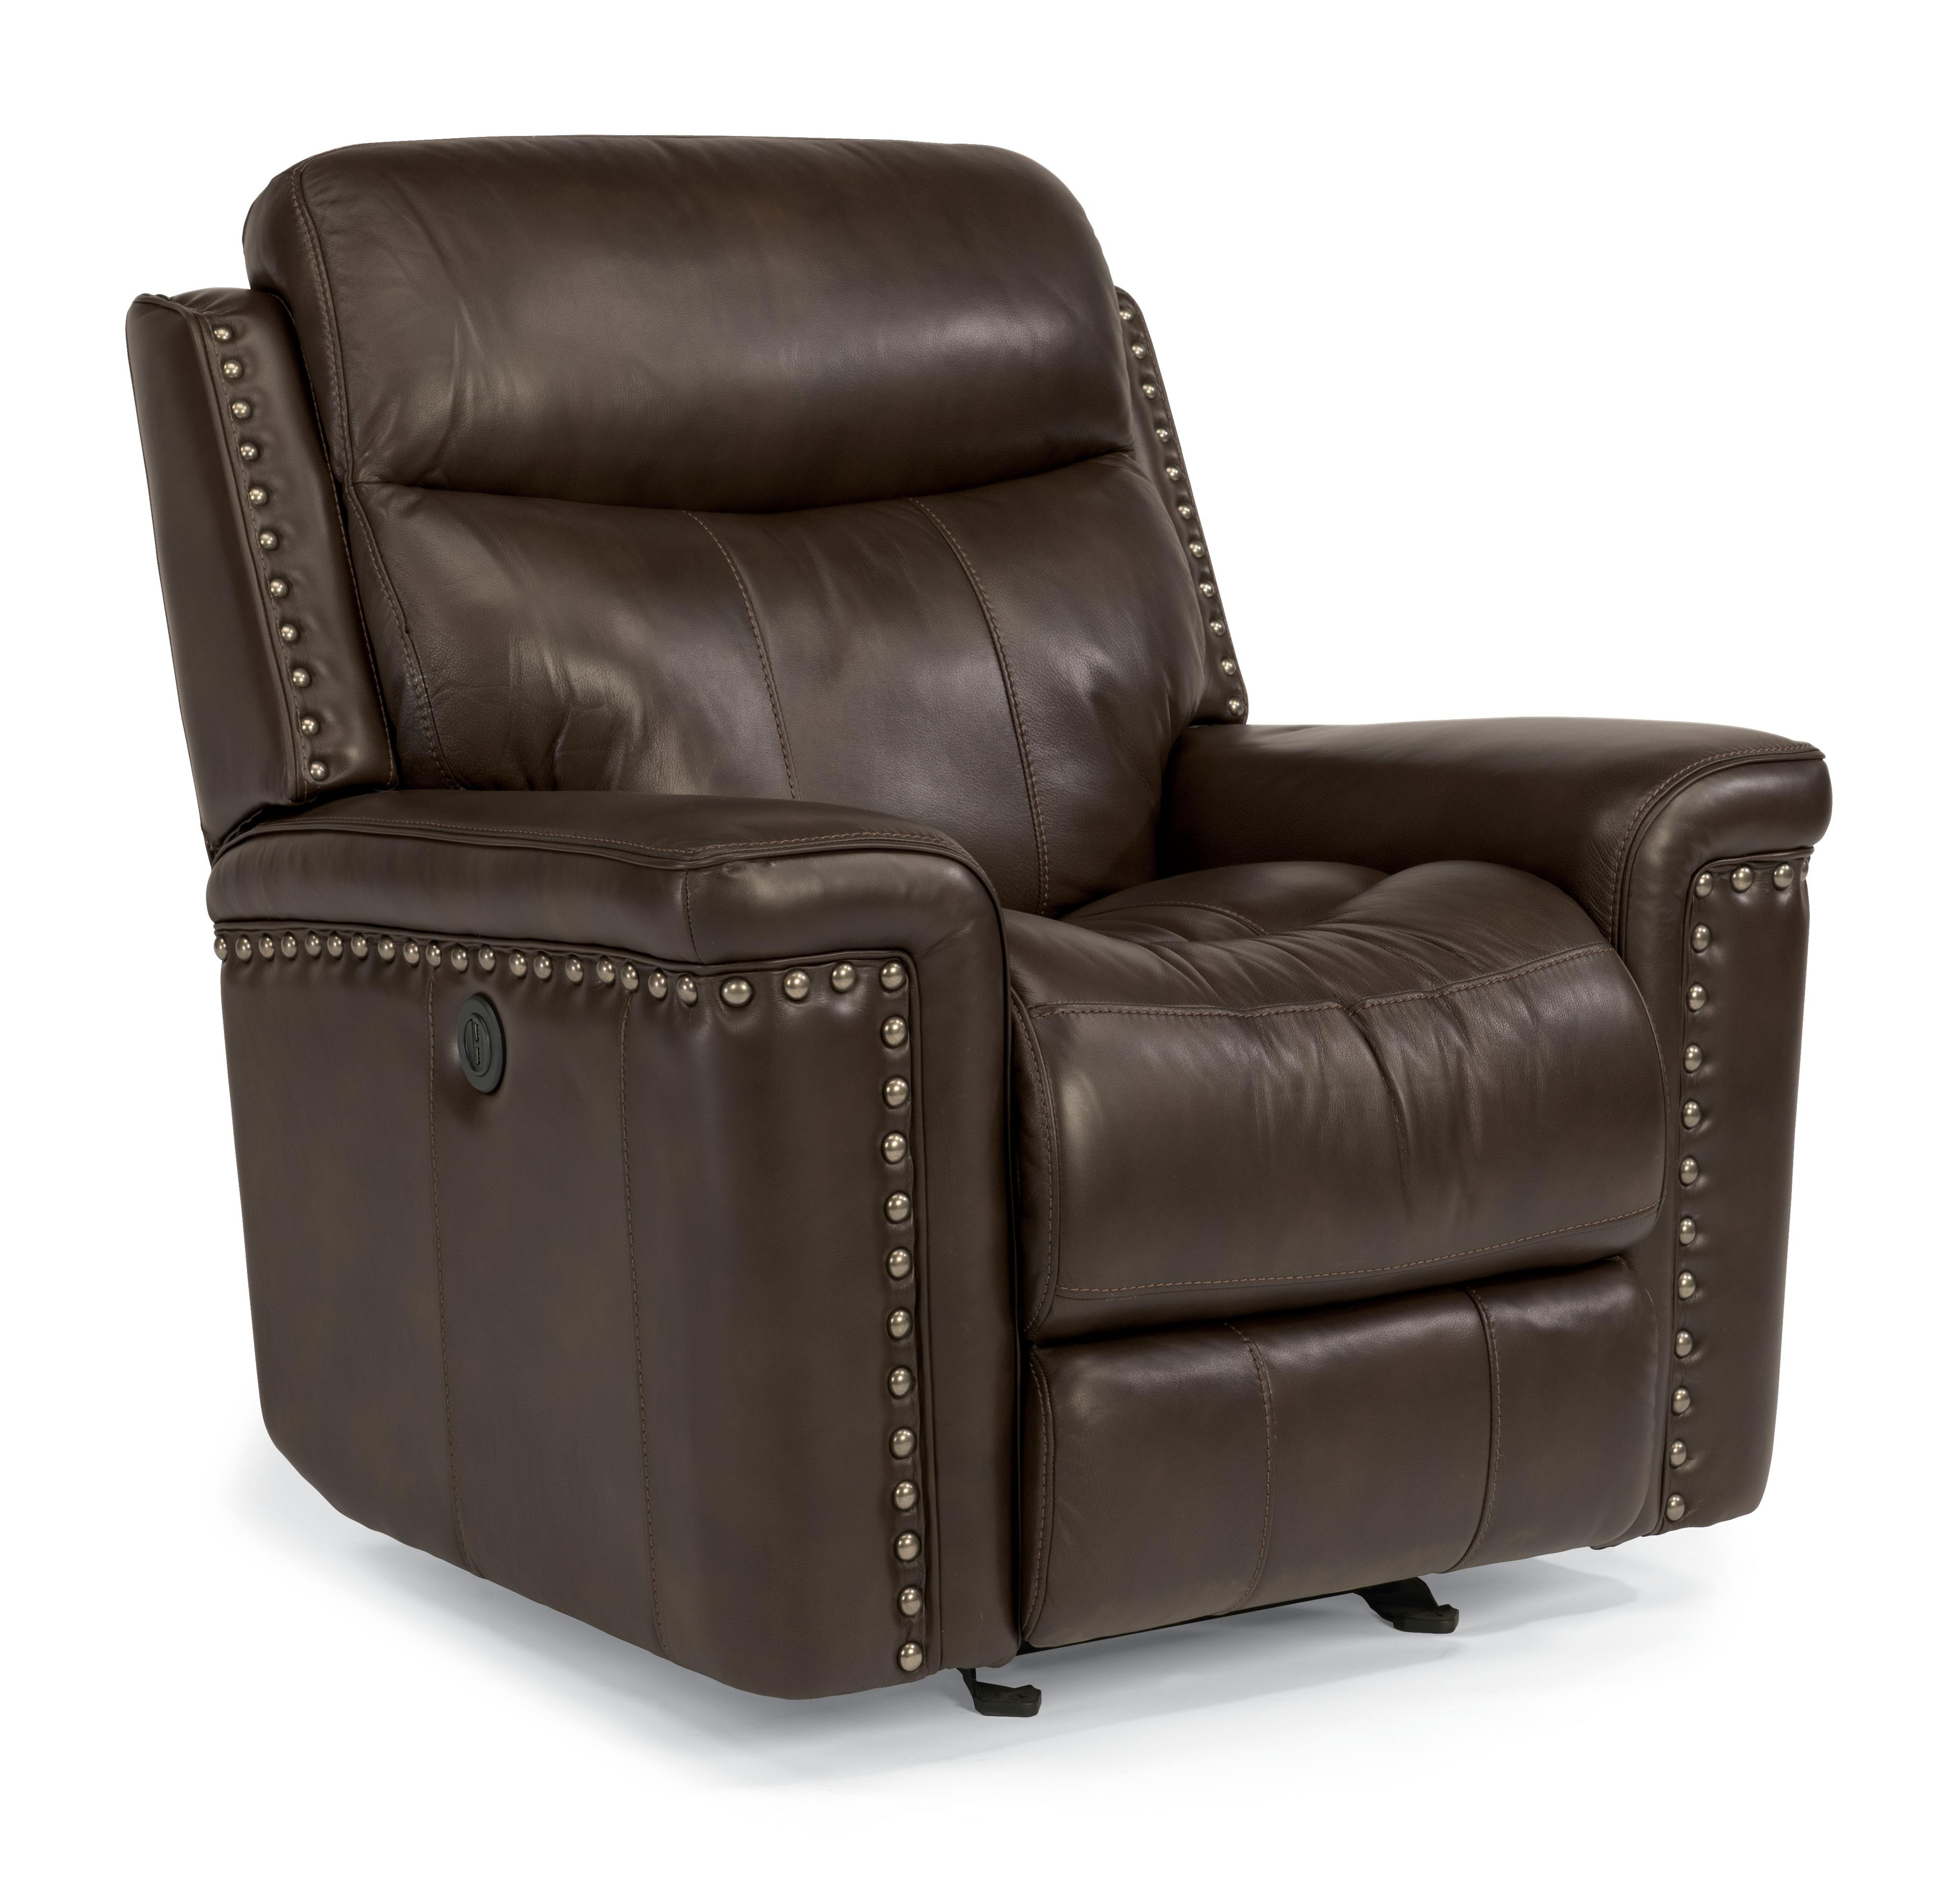 Flexsteel Latitudes-Grover Power Glider Recliner - Item Number: 1339-54P-014-74